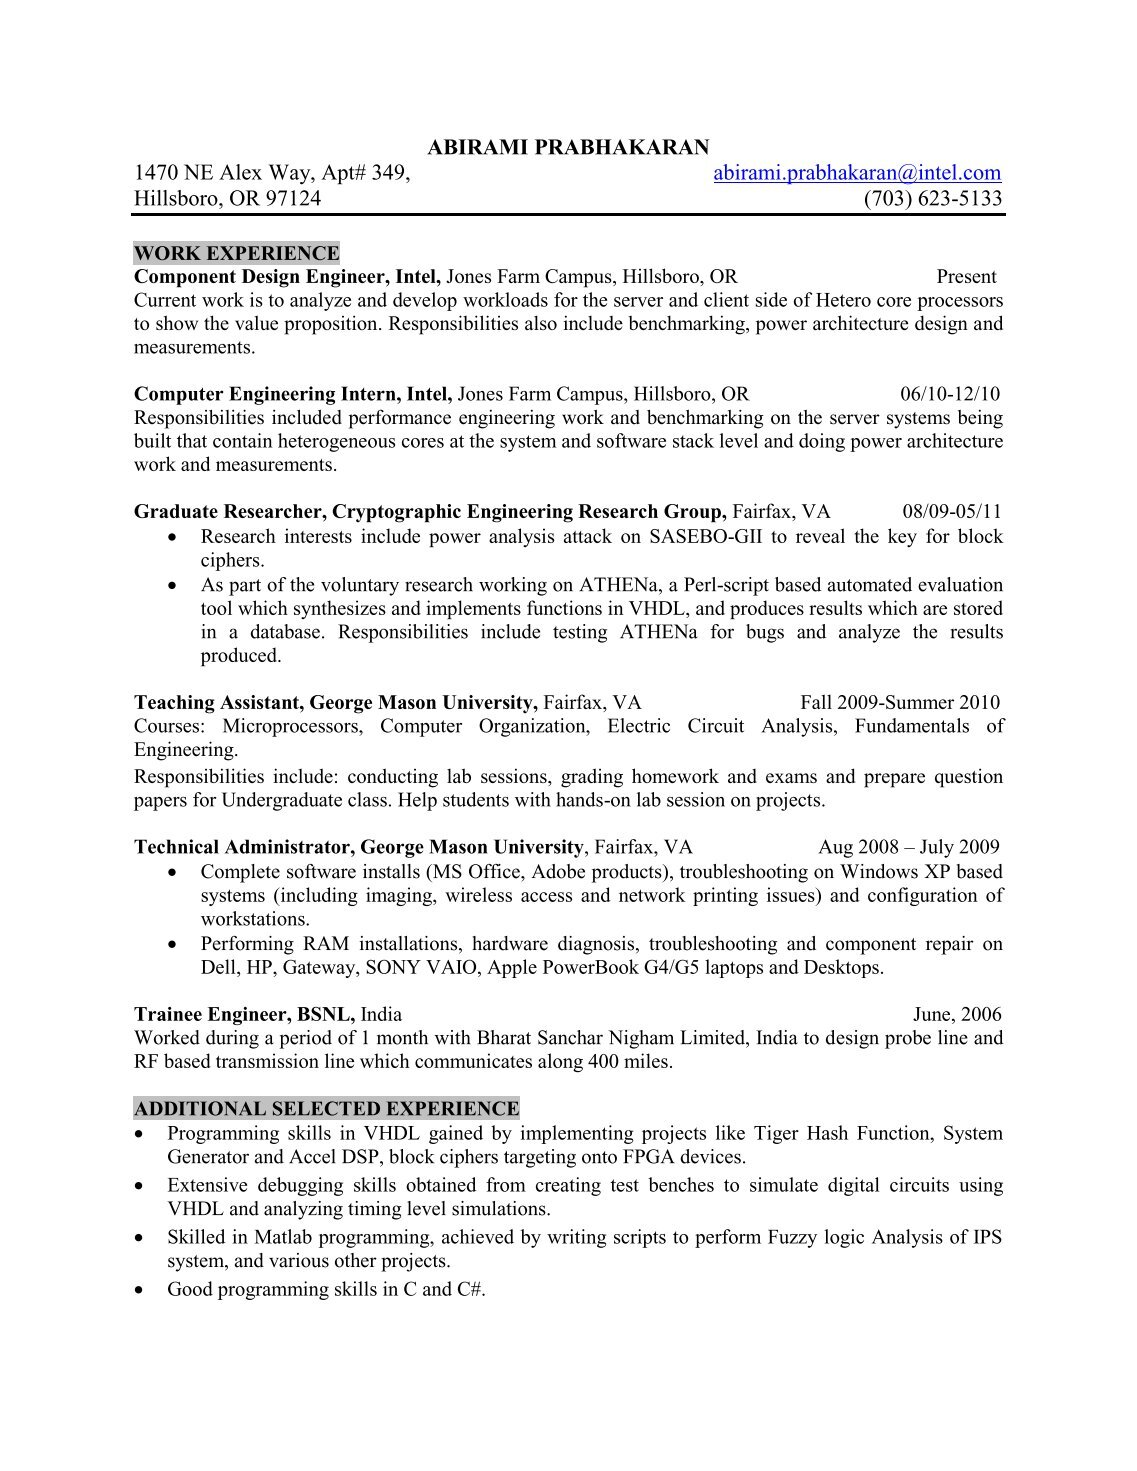 a professional resume format resume format pdf for